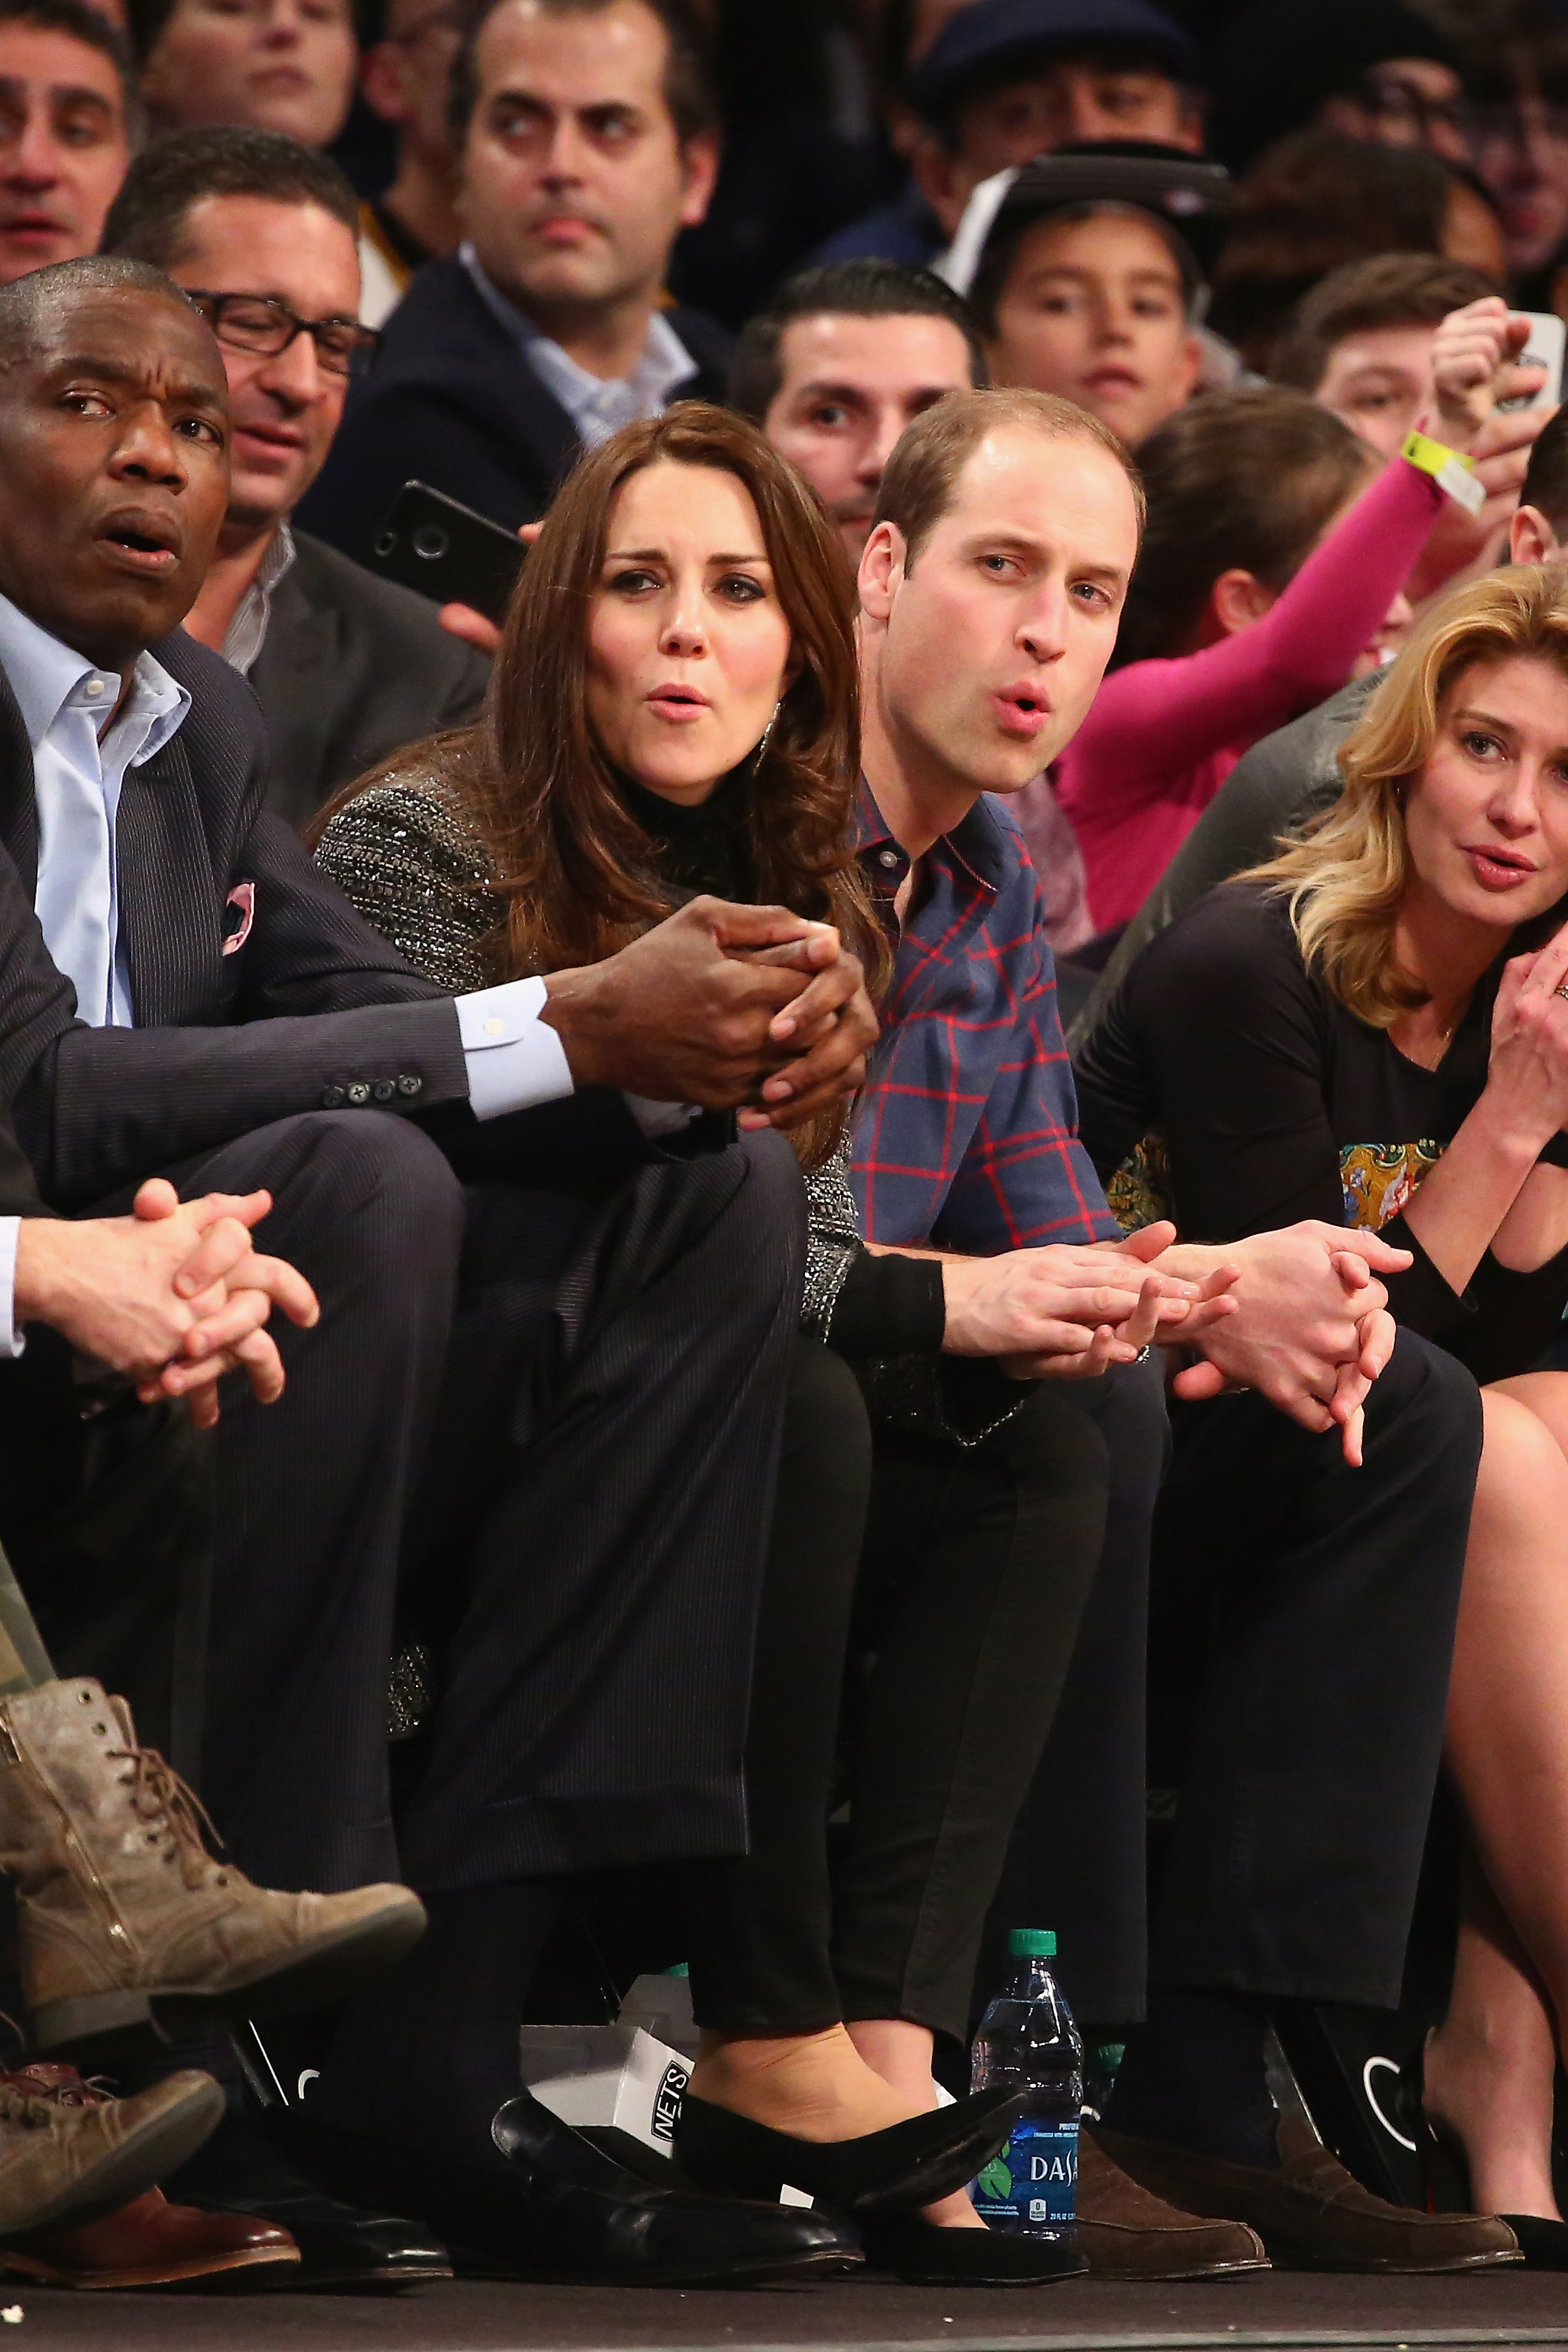 Prince William, Duke of Cambridge and Catherine, Duchess of Cambridge, watch the game between the Cleveland Cavaliers and the Brooklyn Nets at Barclays Center in New York City on Dec. 8, 2014.